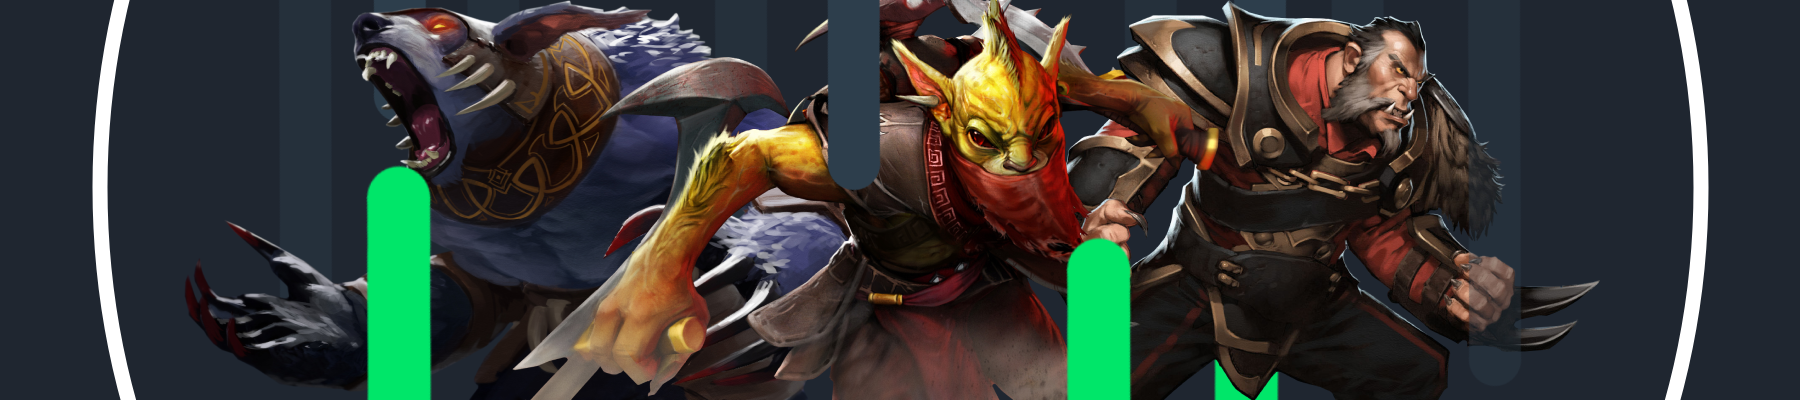 Dota2 Banner Games Pages 3